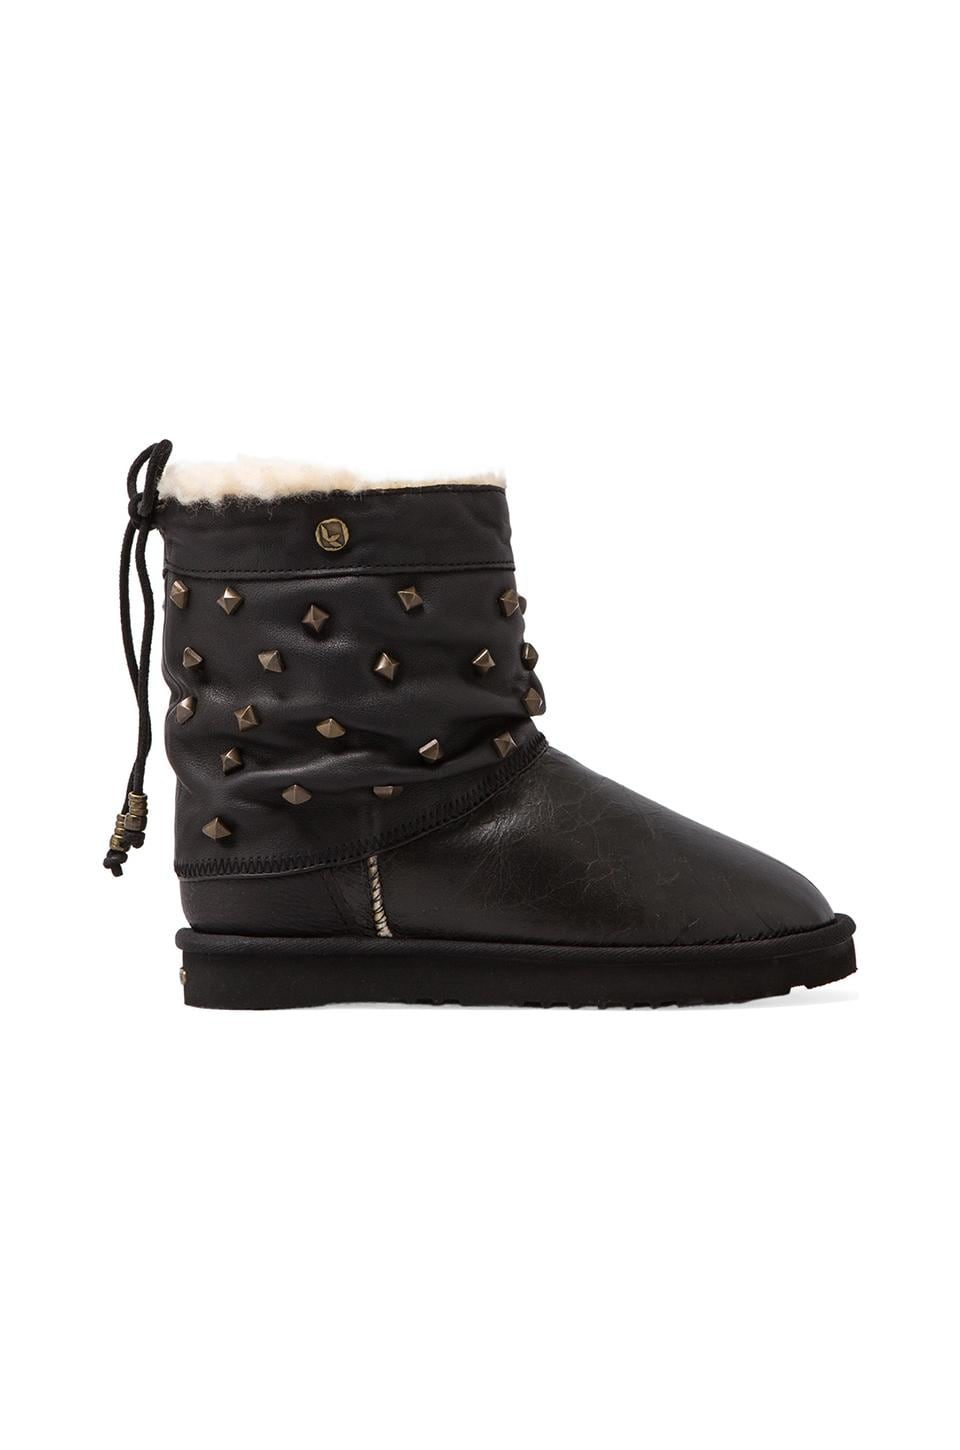 Koolaburra Alesta Studs Boot with Wool and Twinface Sheepskin in Black Distressed/Distressed Studs